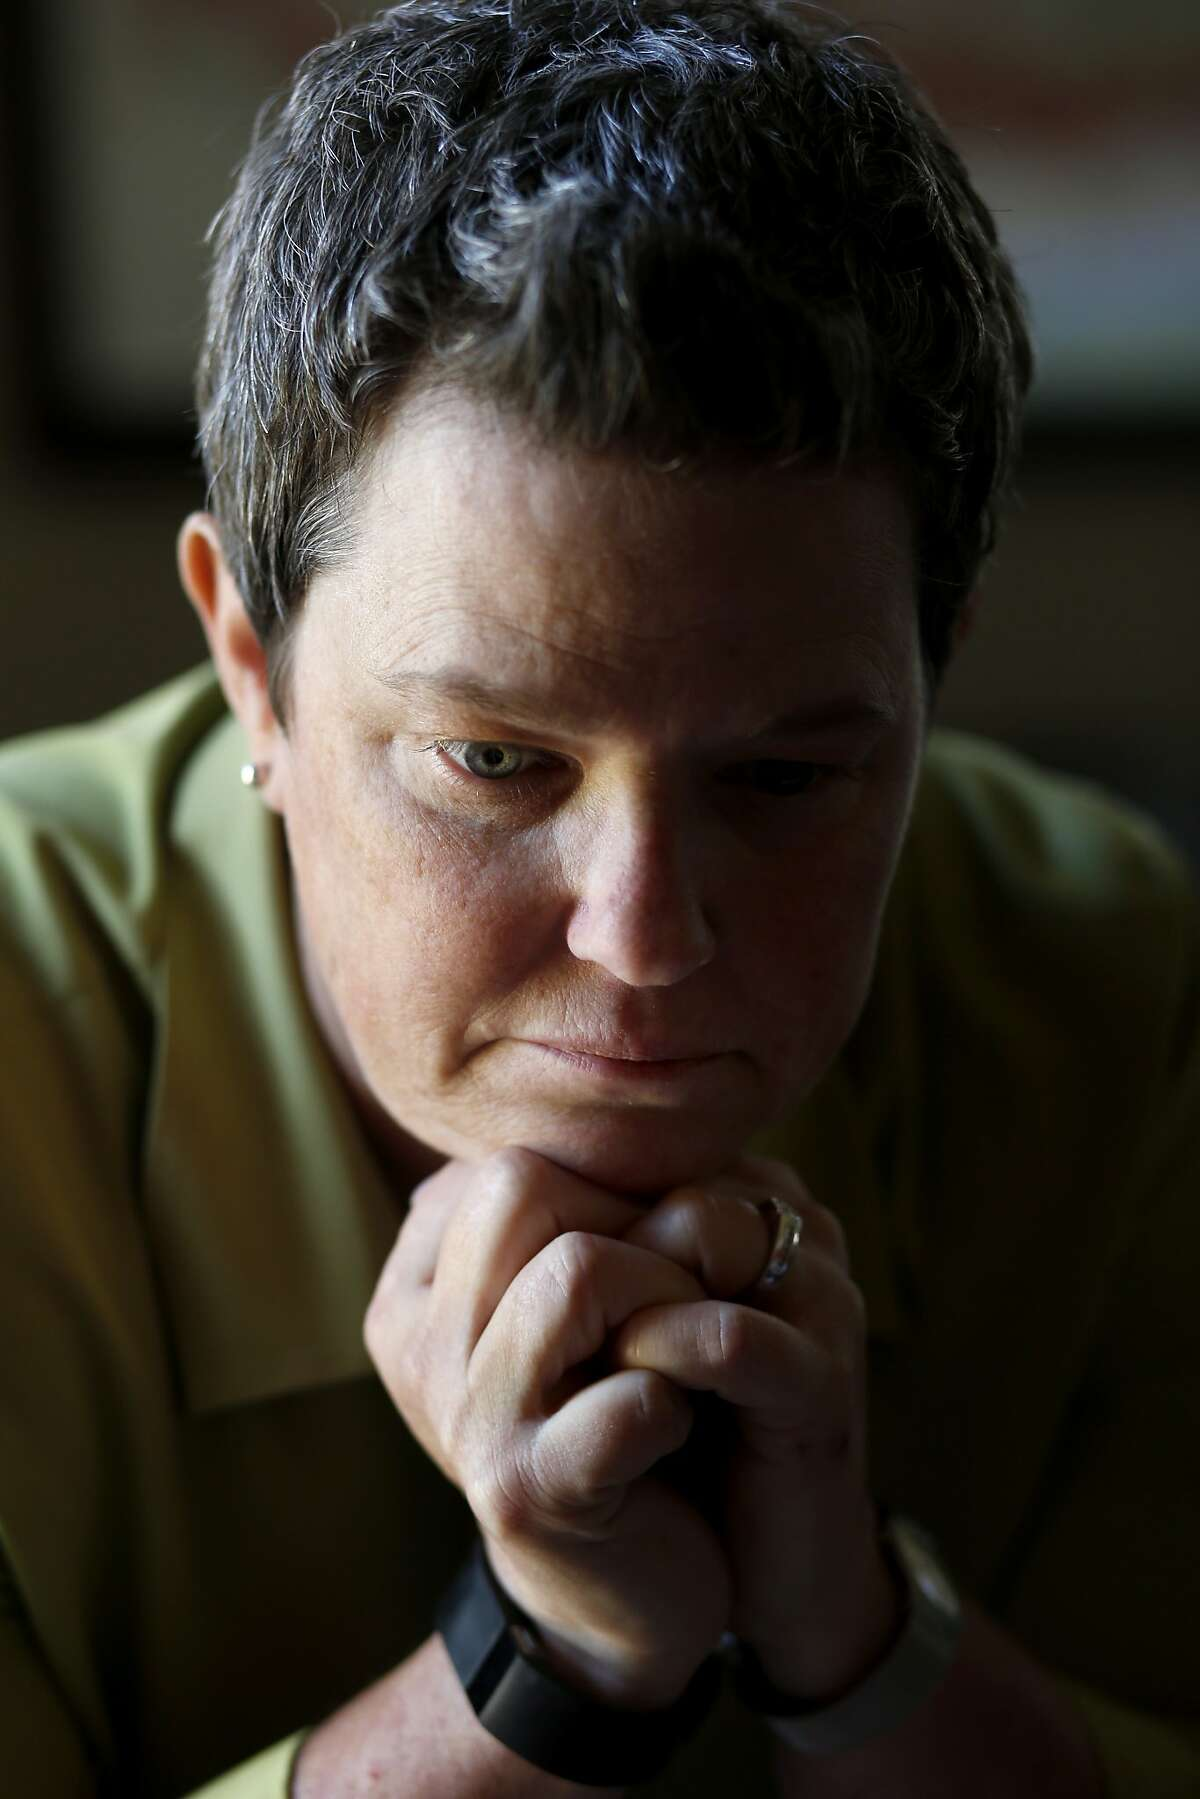 Iraq War veteran Kelly McFarland suffered from PTSD after returning from the war. She pauses in the living room of her Livermore, Calif home Tuesday June 17, 2014. Kelly McFarland, a veteran of the Iraq War, has been following the recent events in that part of the world with great interest.